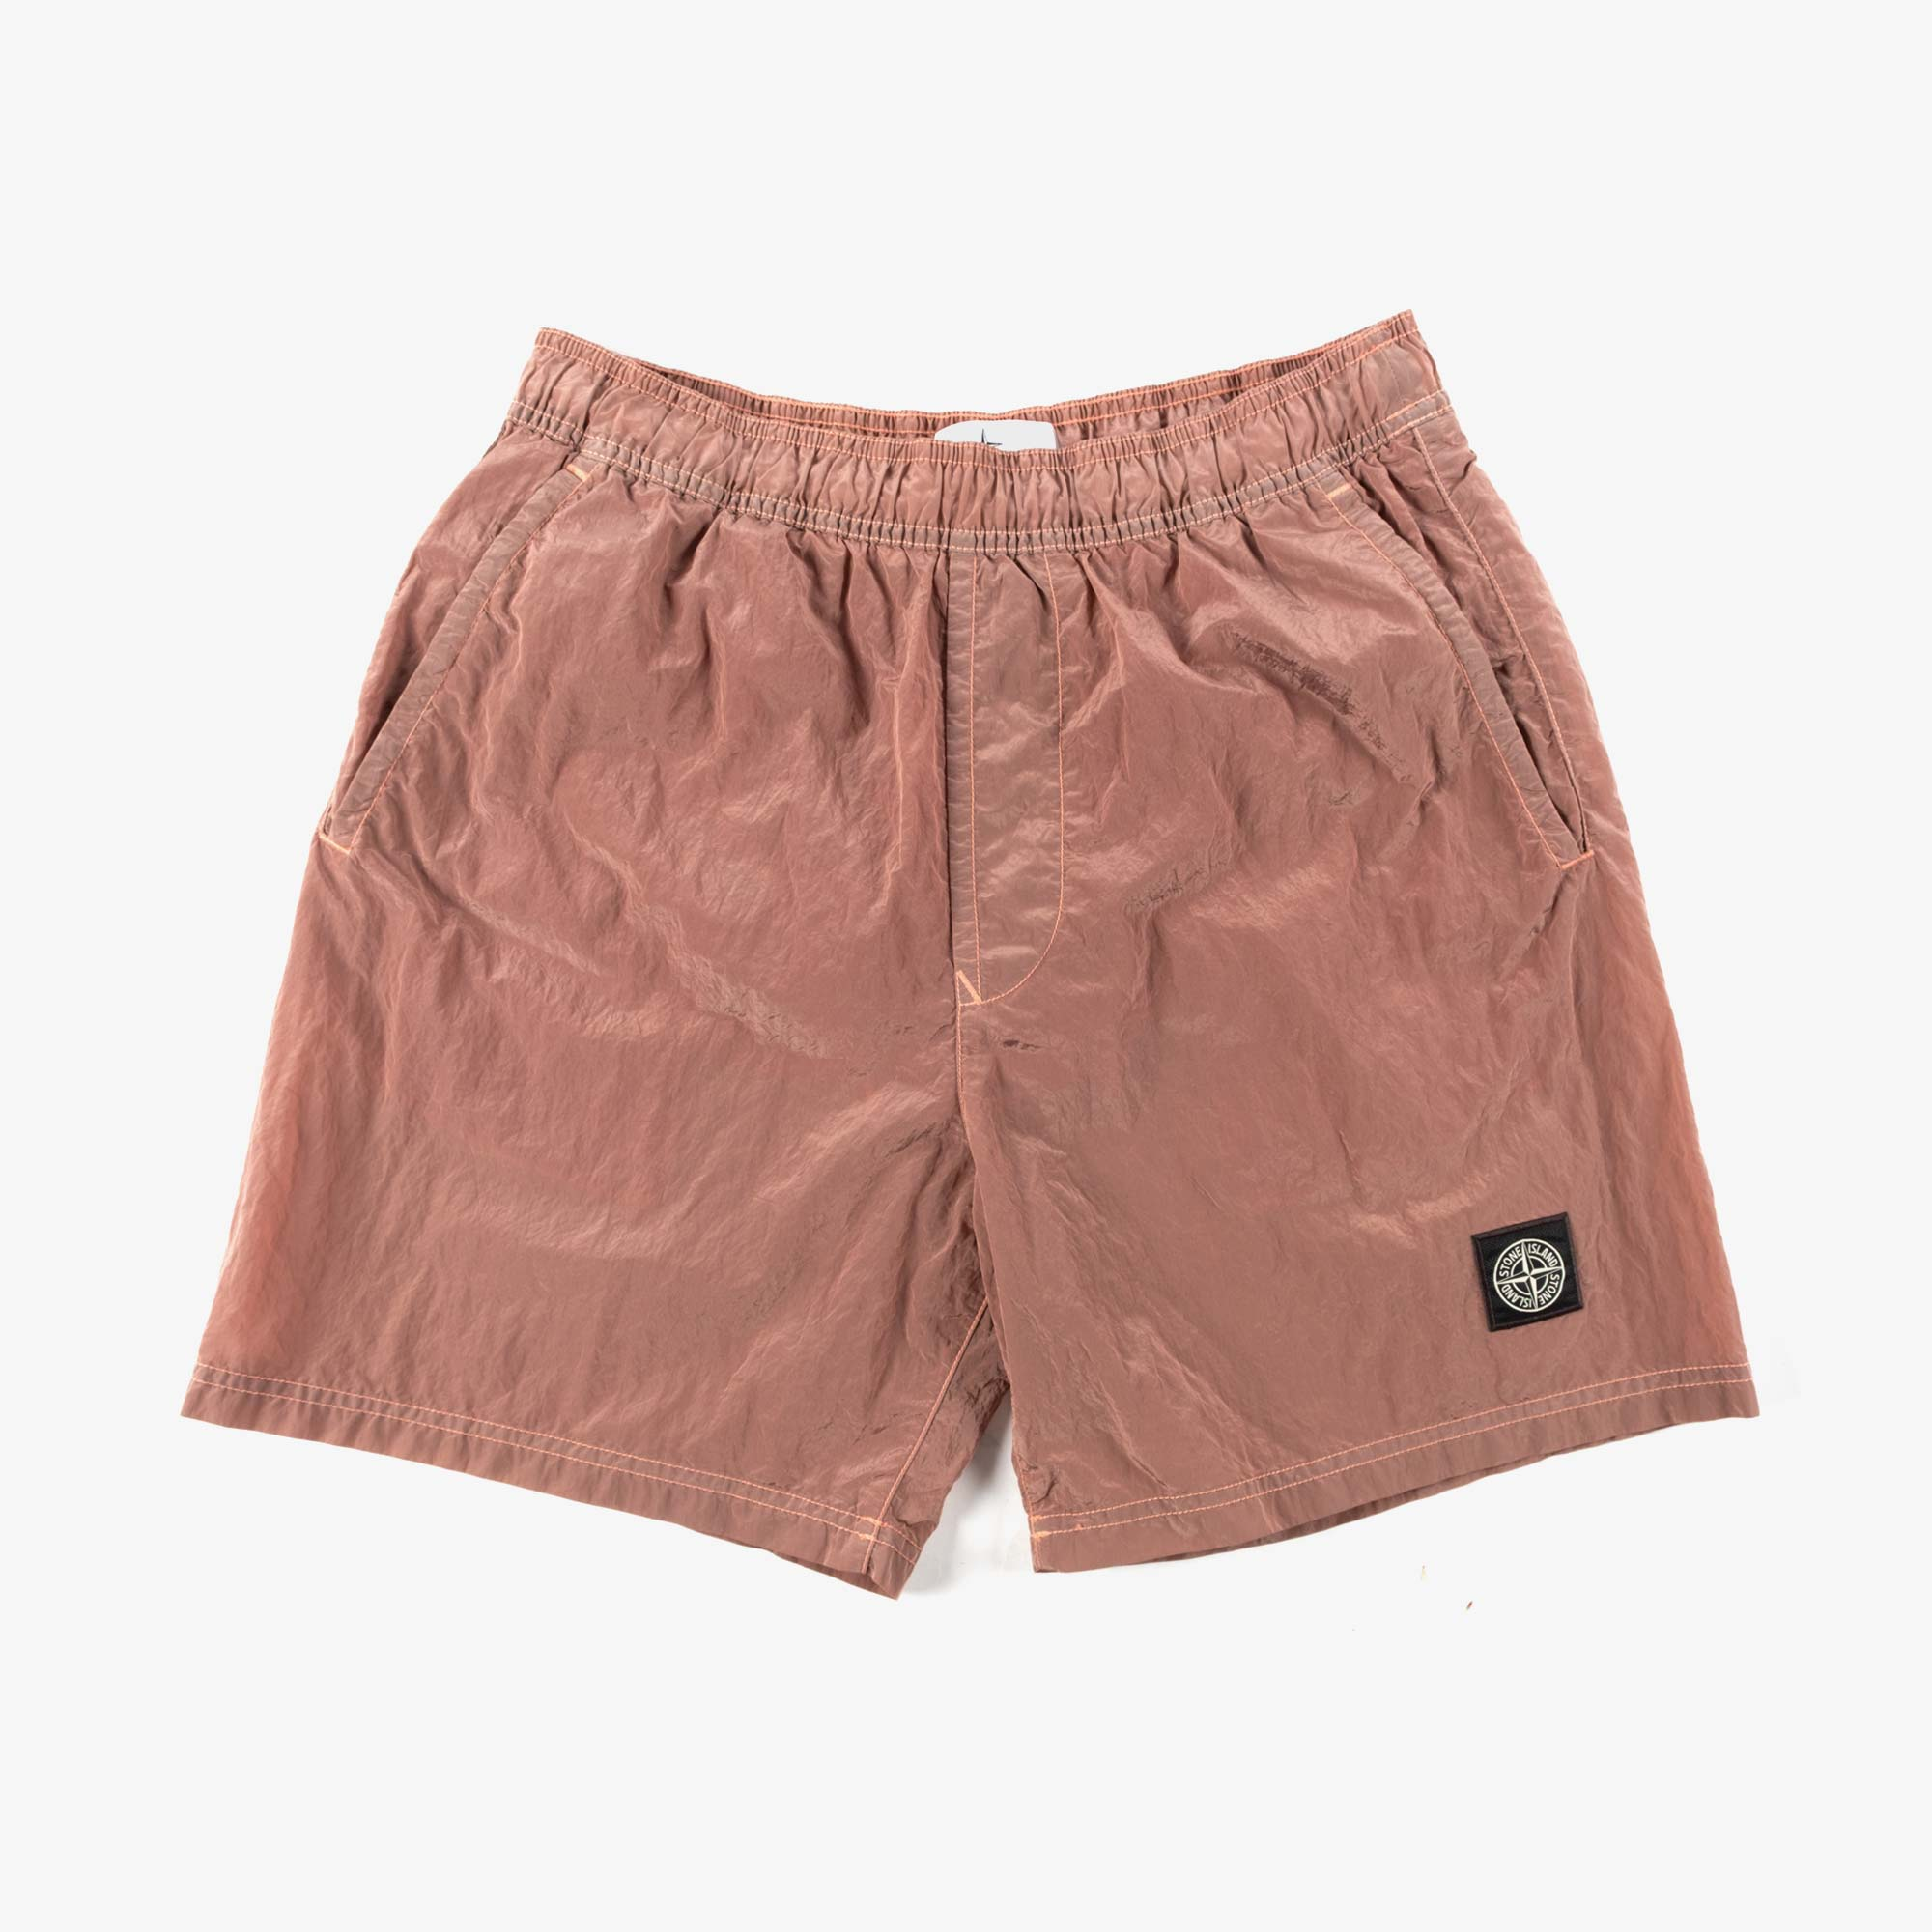 Stone Island Nylon Metal Swim Shorts 7415B0943 Shorts - Rose Quartz 1